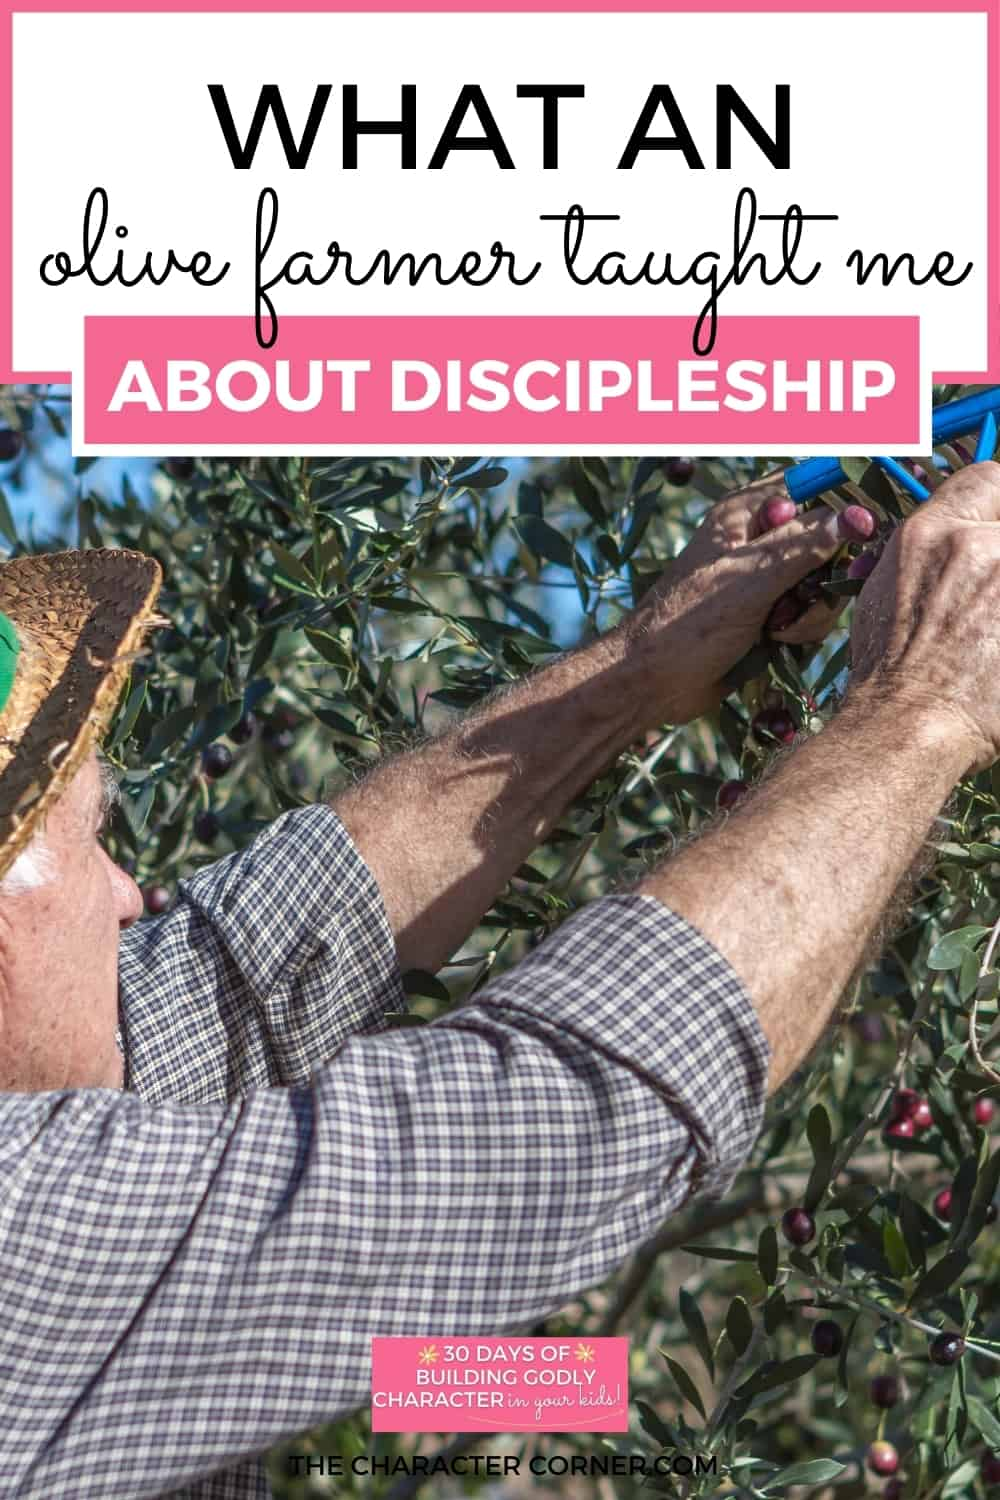 Olive Farm Pruning Tree text on image reads: What an Olive Farmer Taught Me About Discipleship